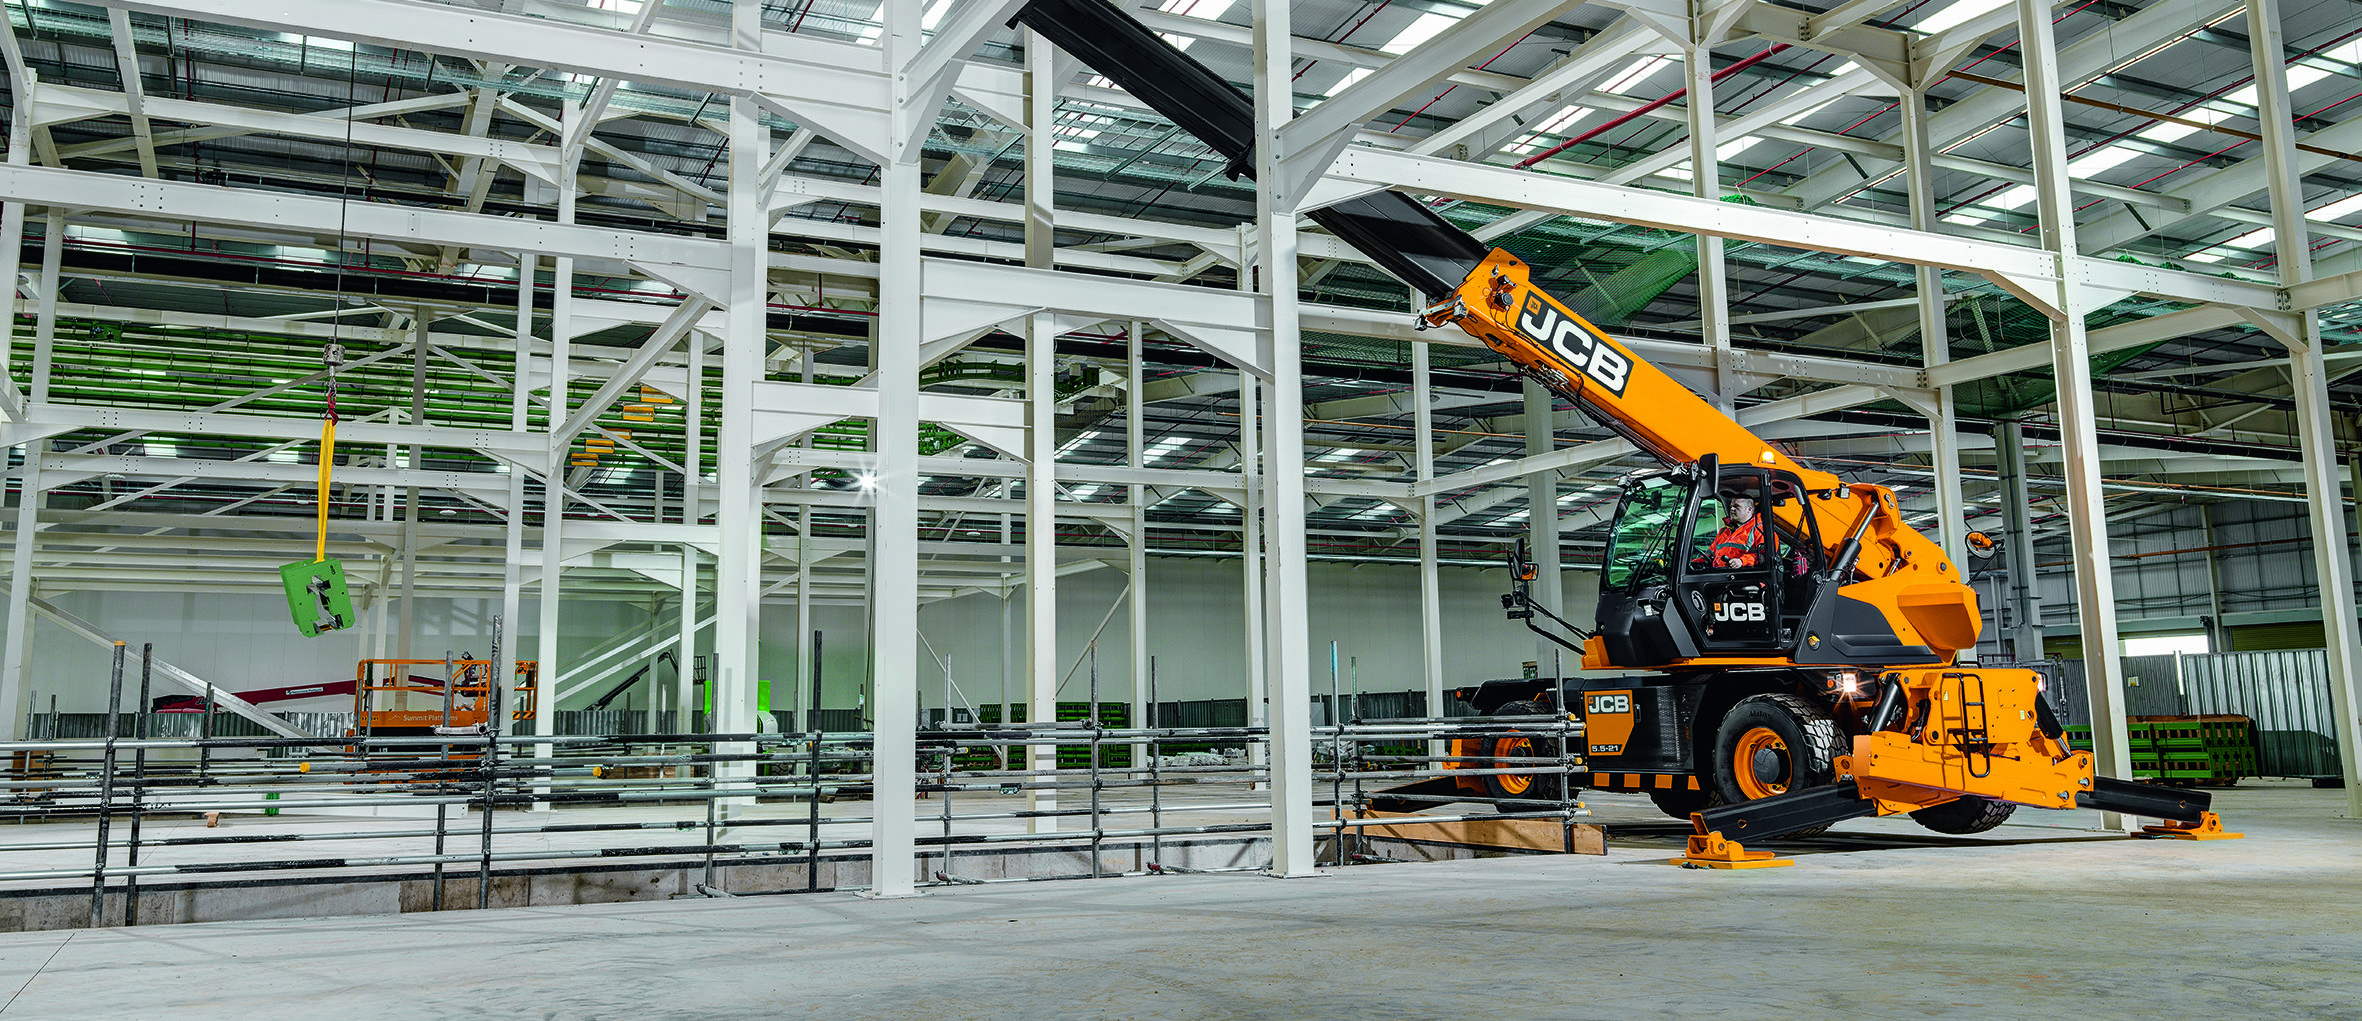 Image of a JCB rotating telescopic handler 5.5-21